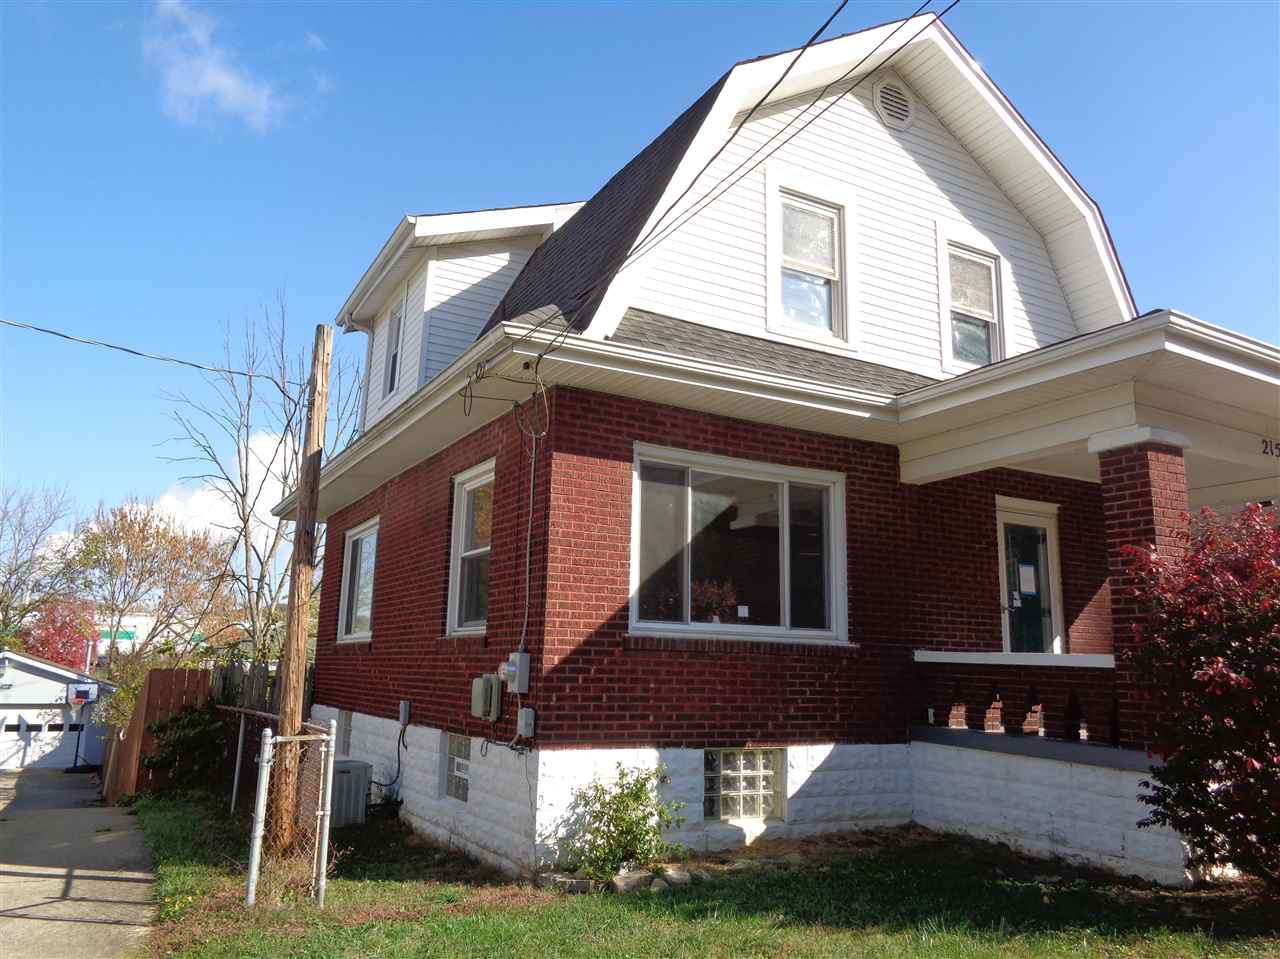 Photo 3 for 215 W 2nd St Silver Grove, KY 41085